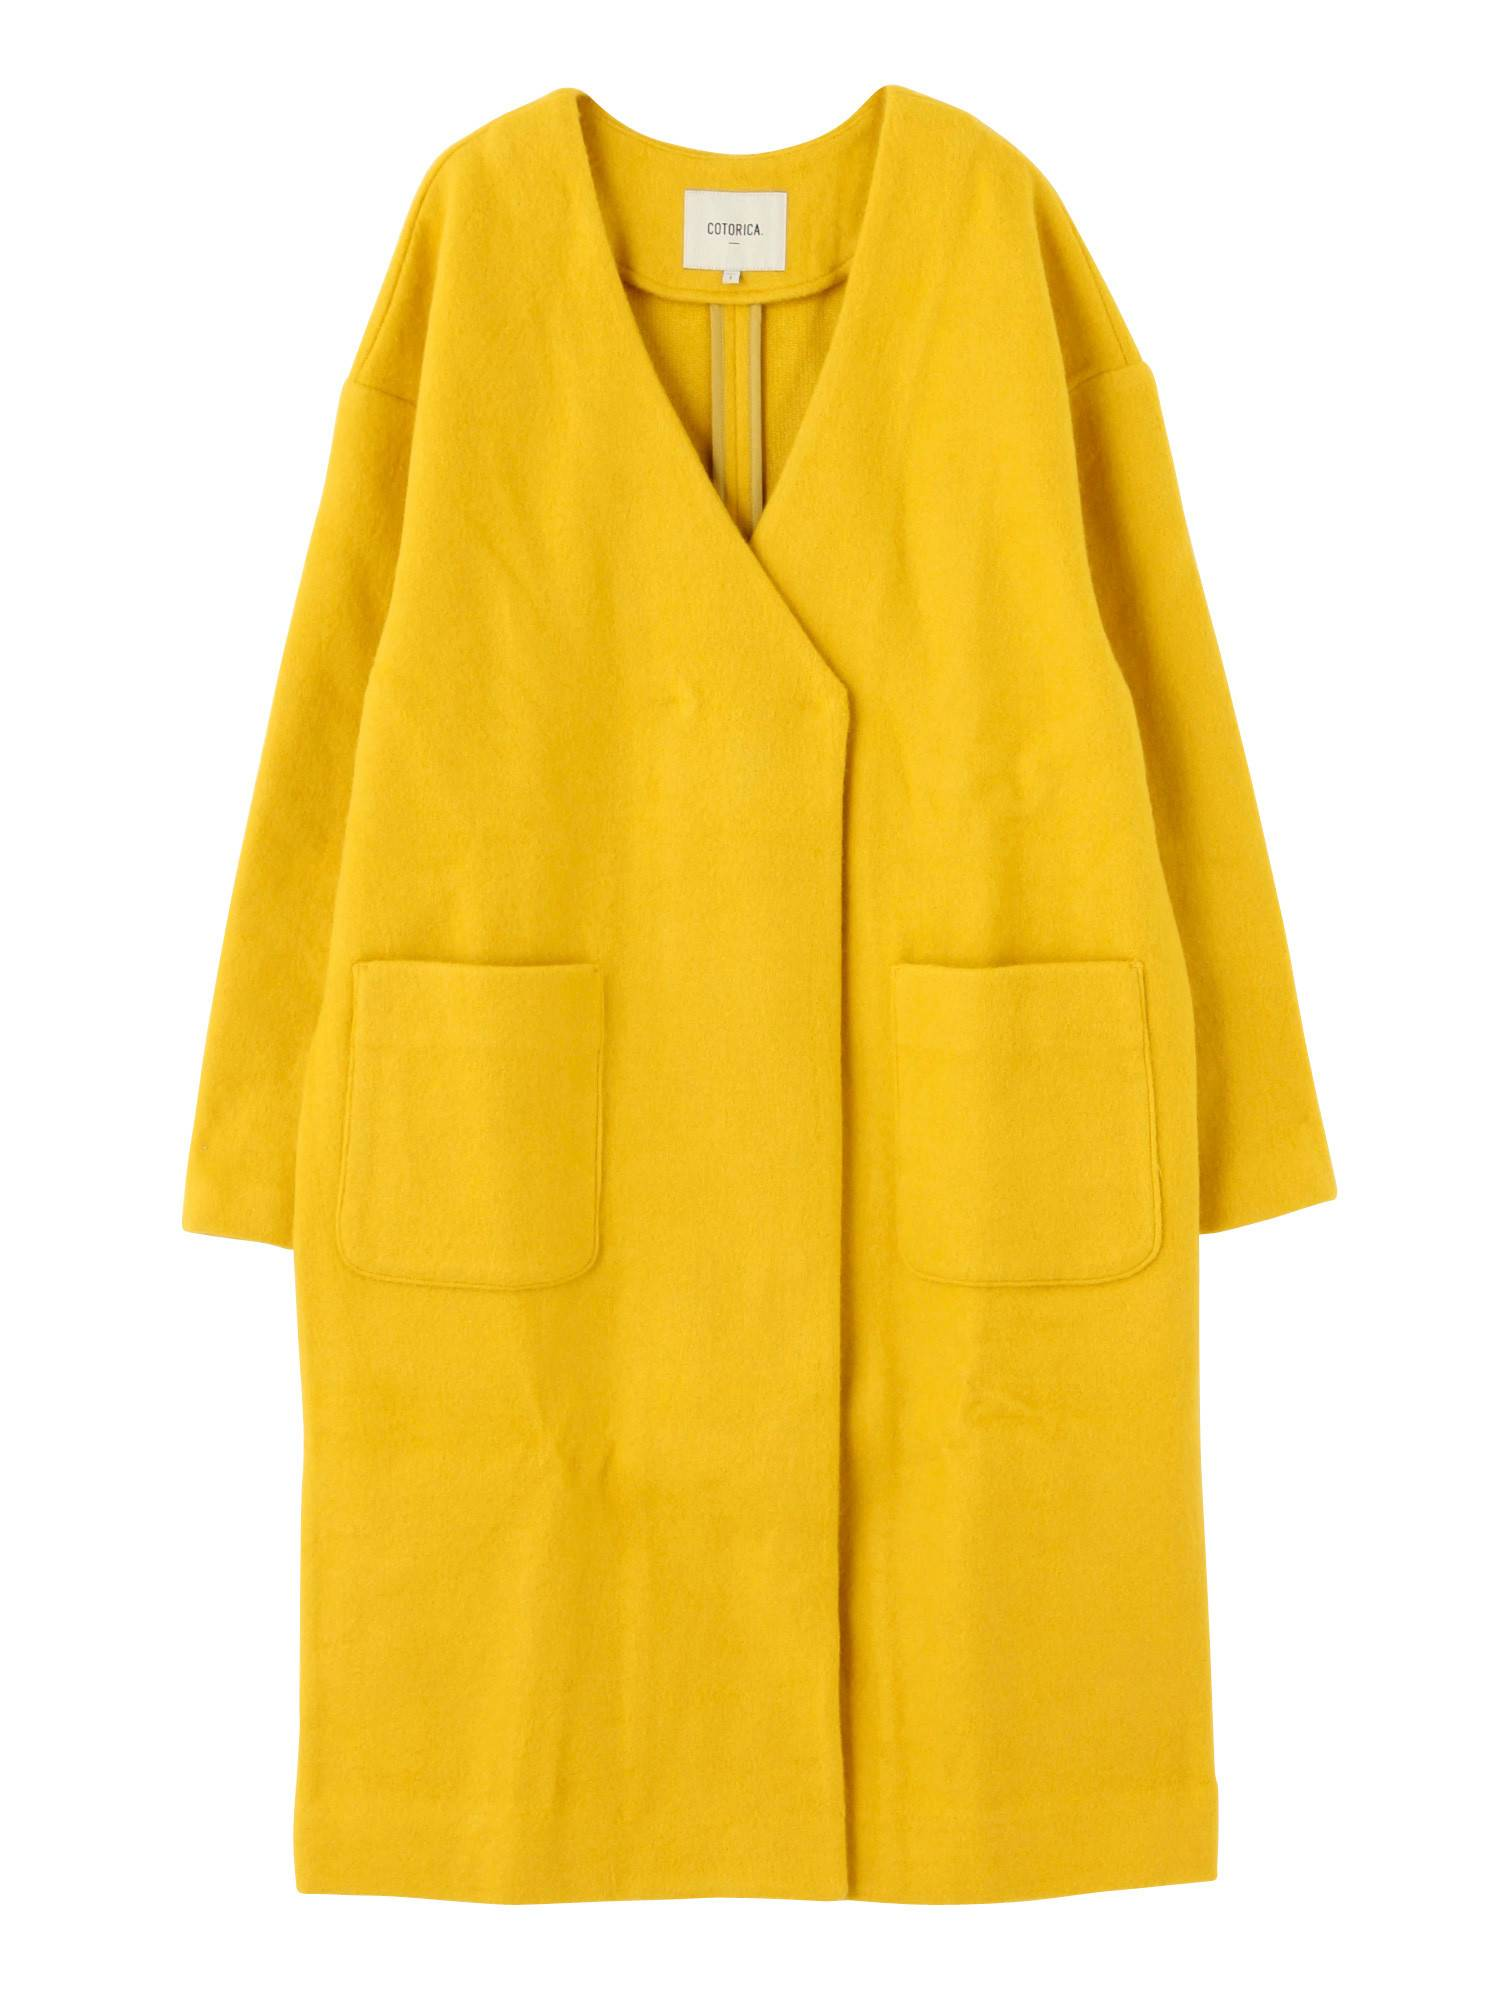 [WOMEN] No color jersey coat